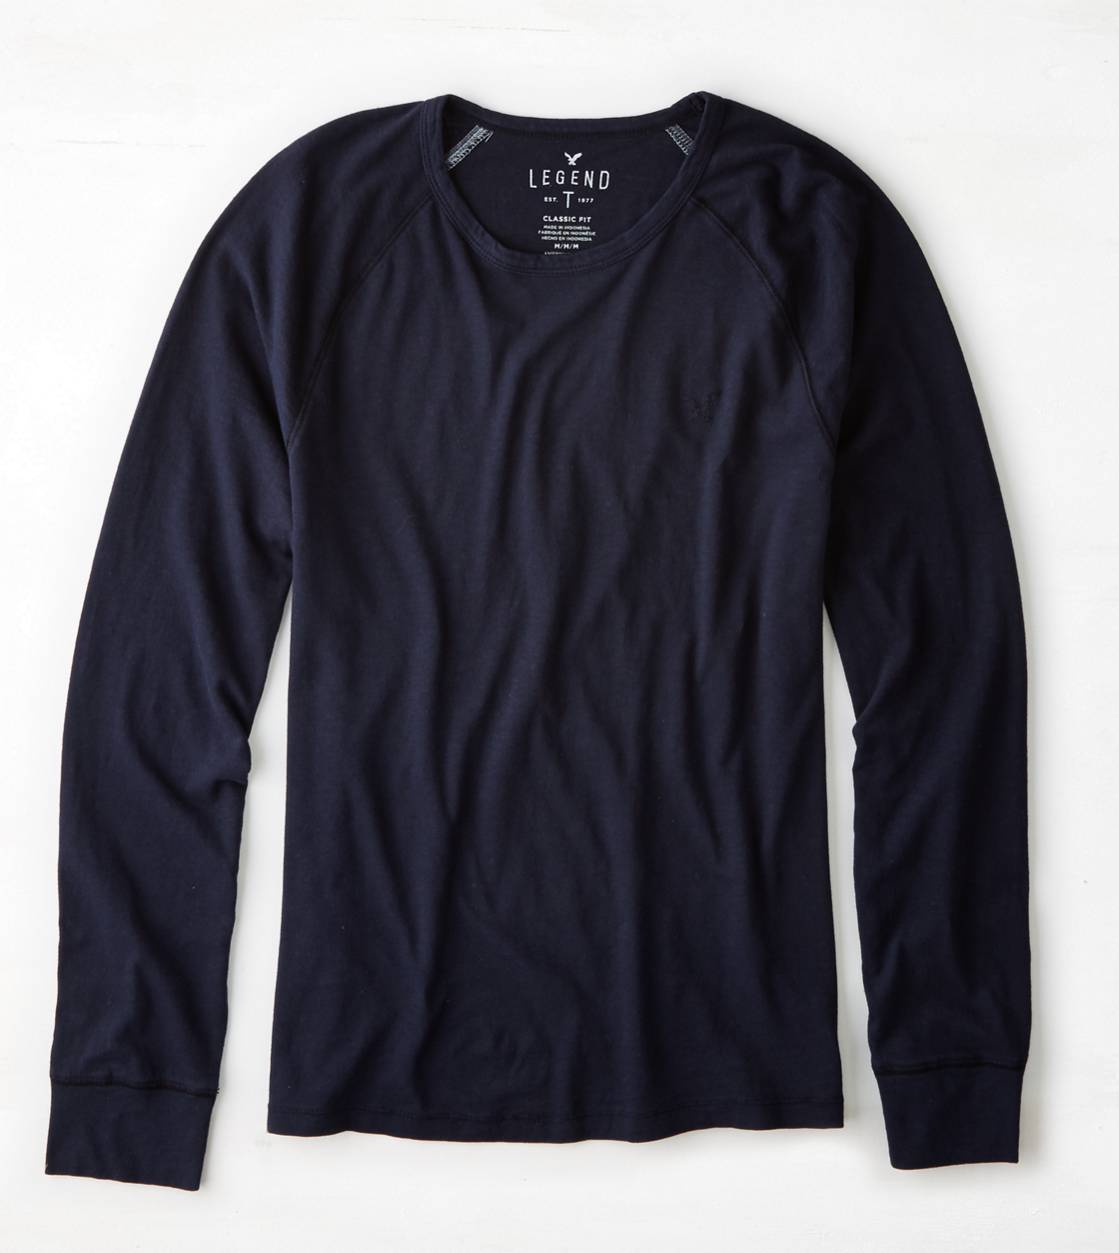 Fleet Navy AE Legend Long Sleeve T-Shirt